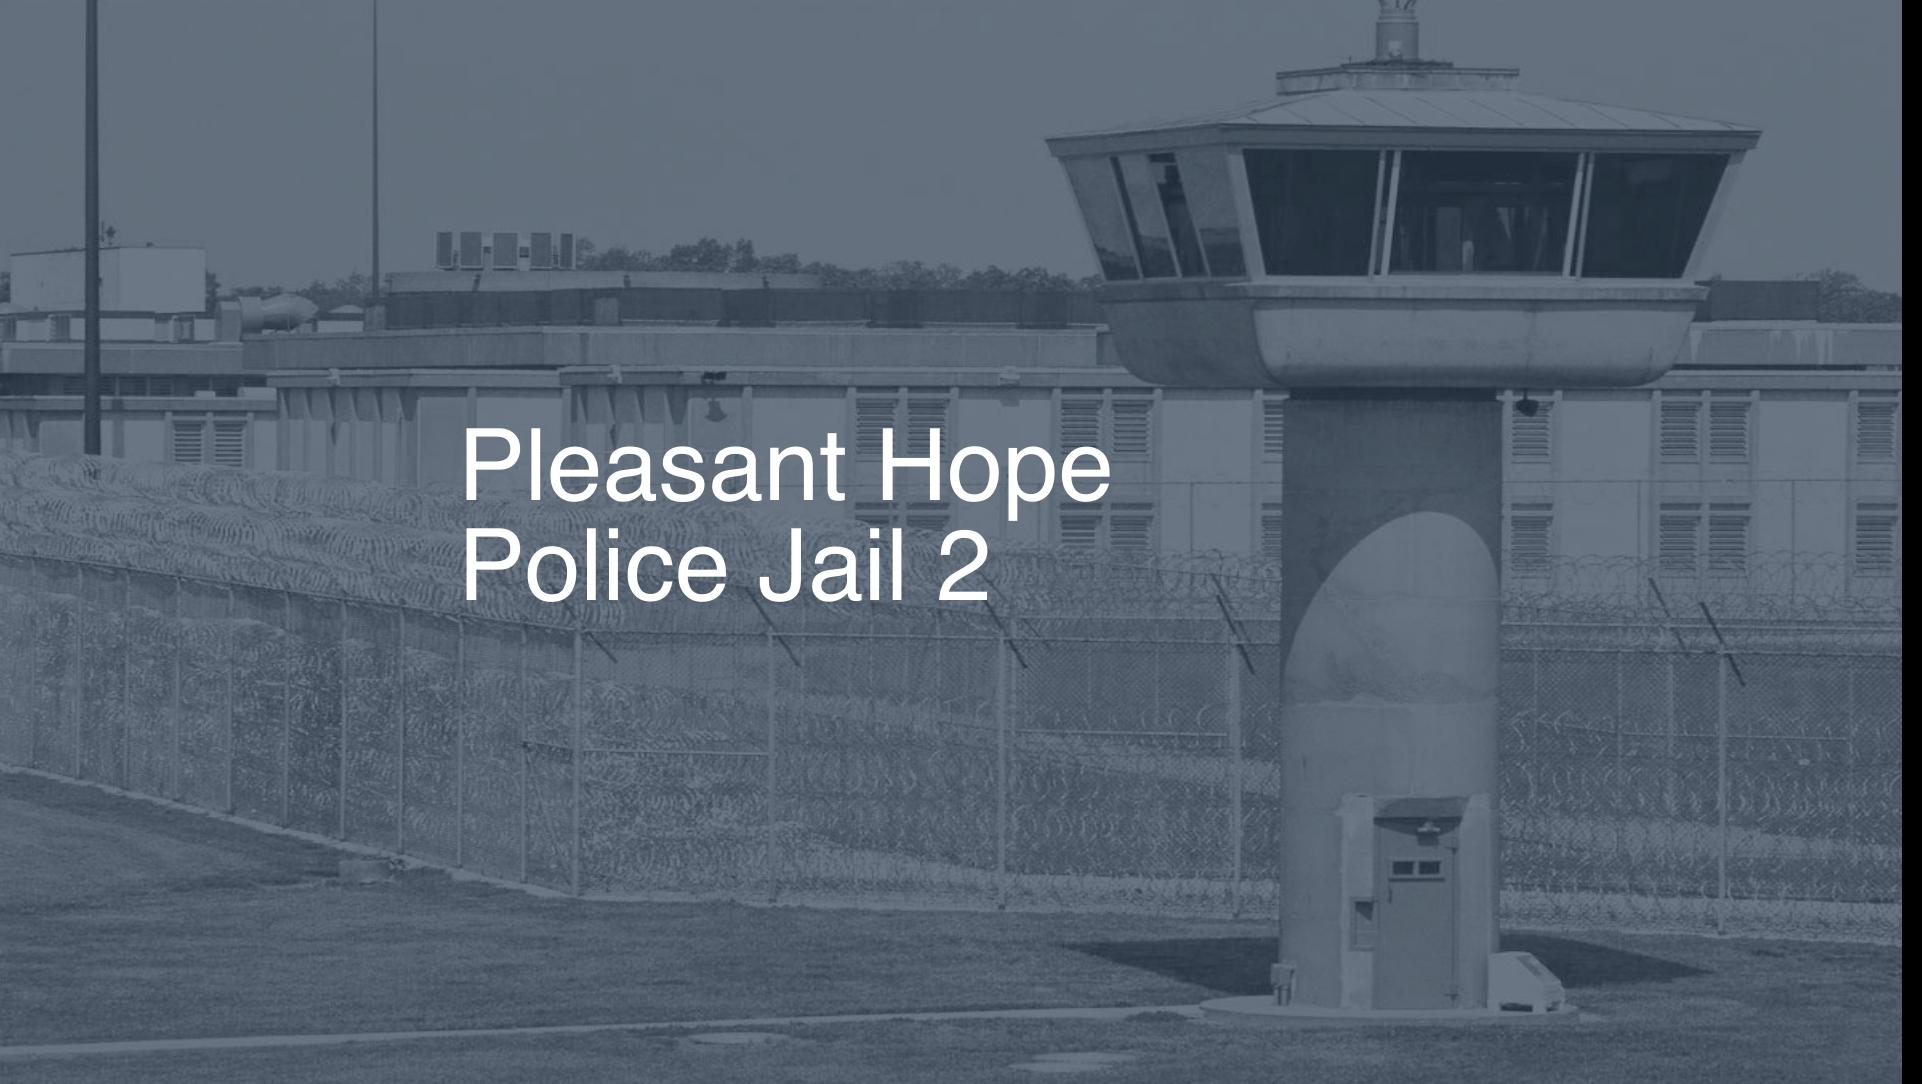 Pleasant Hope Police Jail correctional facility picture